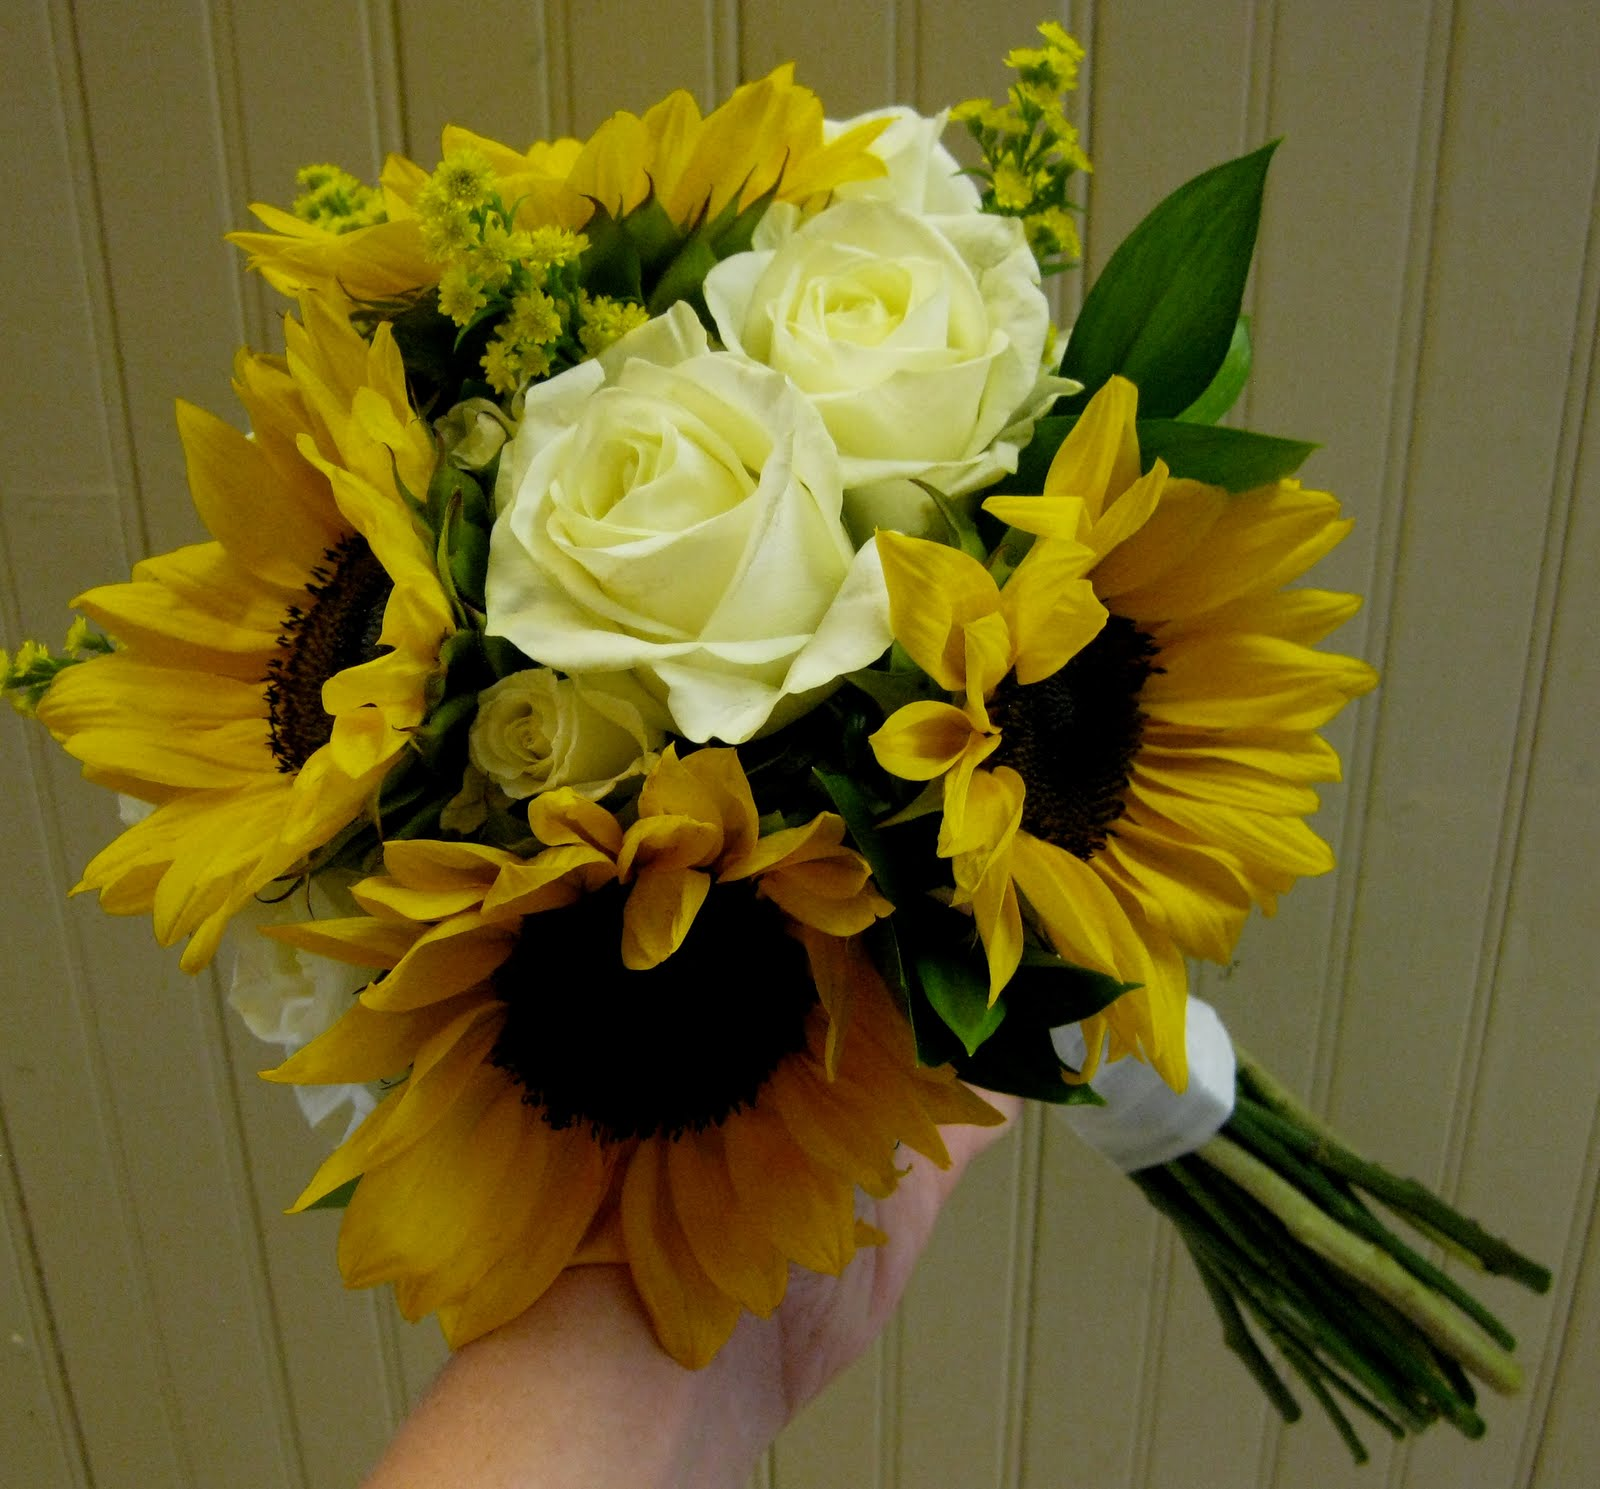 Bridesmaid Bouquets Sunflowers : Goegebeur s wedding bouquet sunflowers